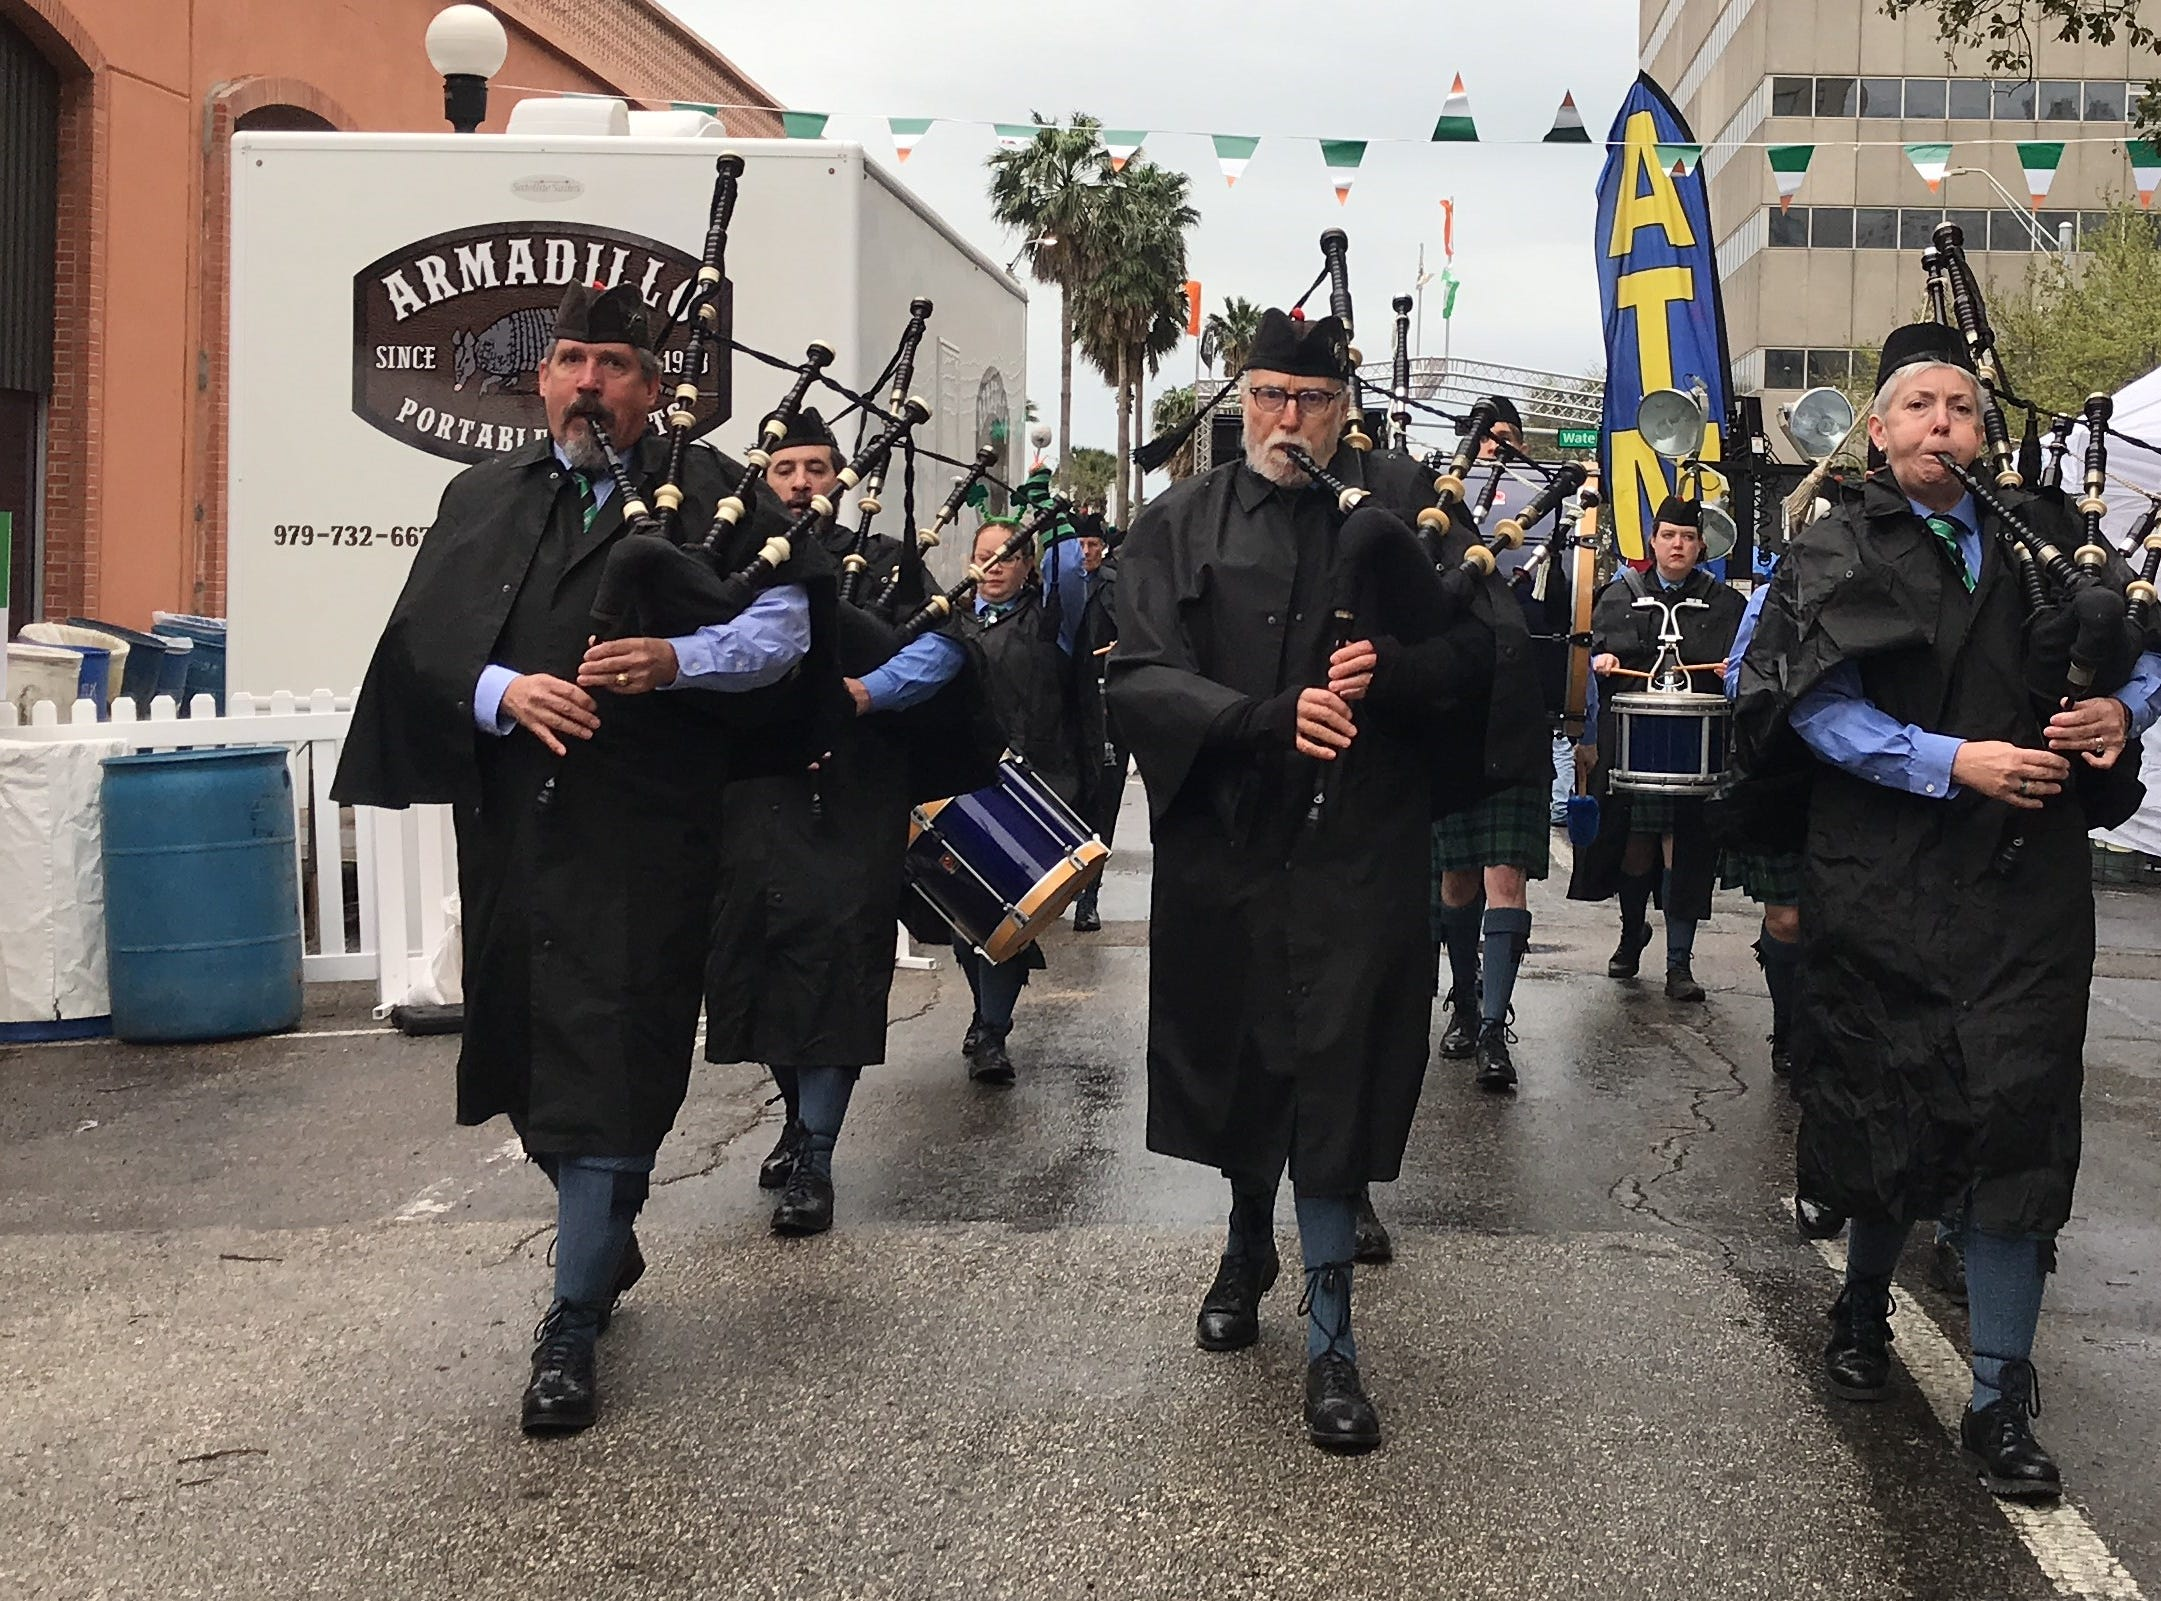 The Silver Thistles Pipes and Drums play traditional Celtic tunes in the streets of downtown Corpus Christi at the 8th annual St. Paddy's Festival Saturday, March 19, 2019.